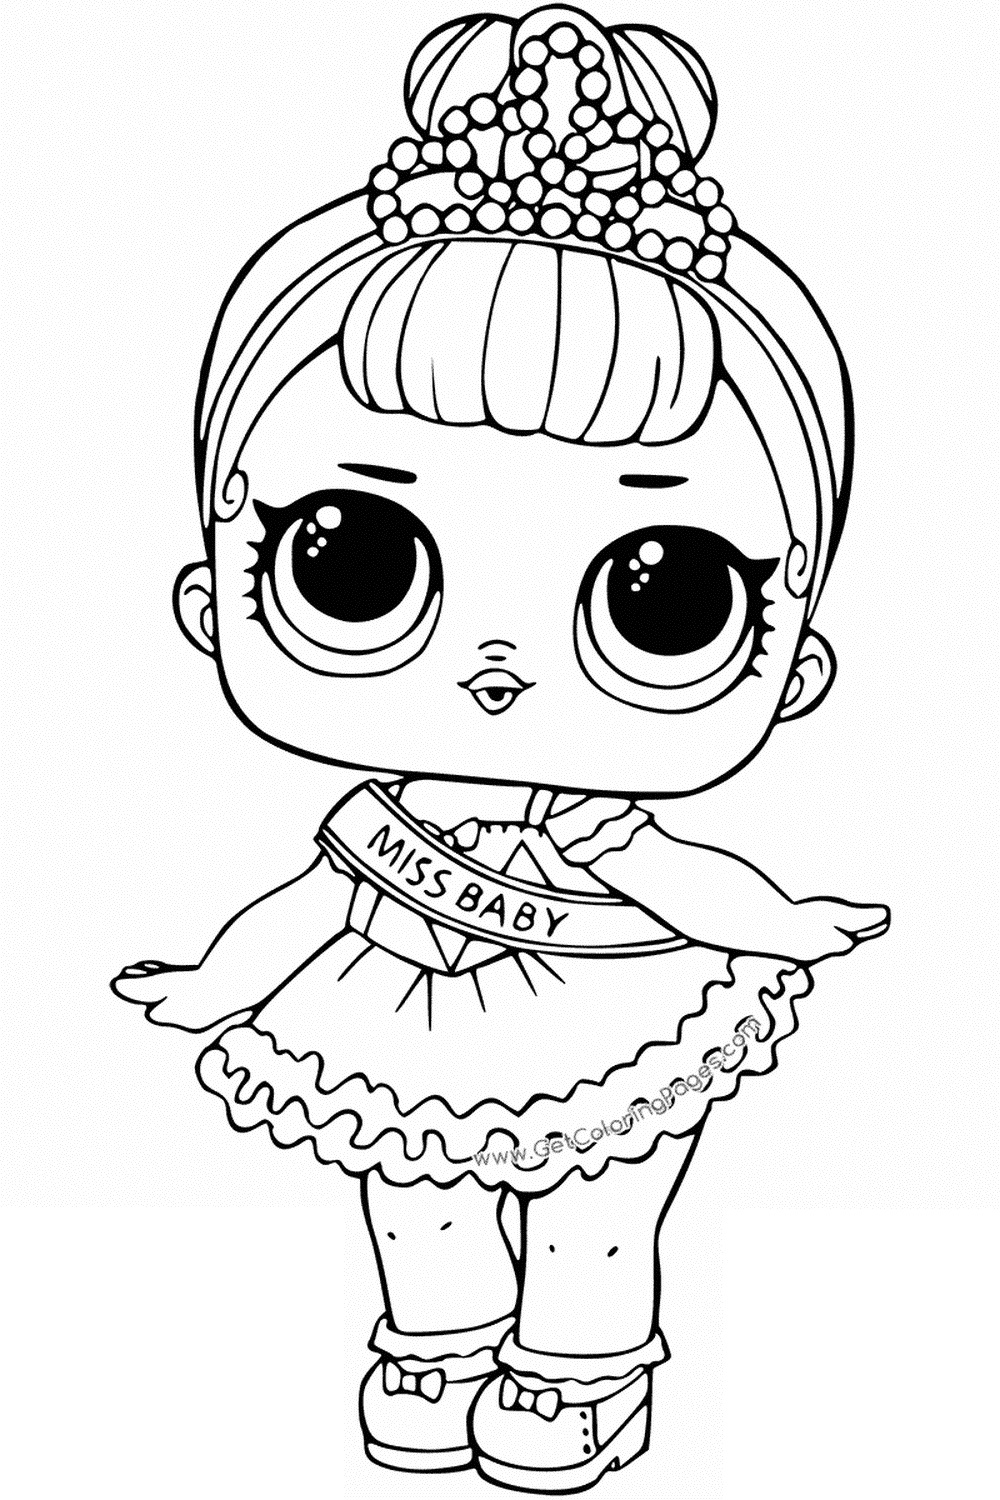 LOL Surprise Dolls Coloring Pages